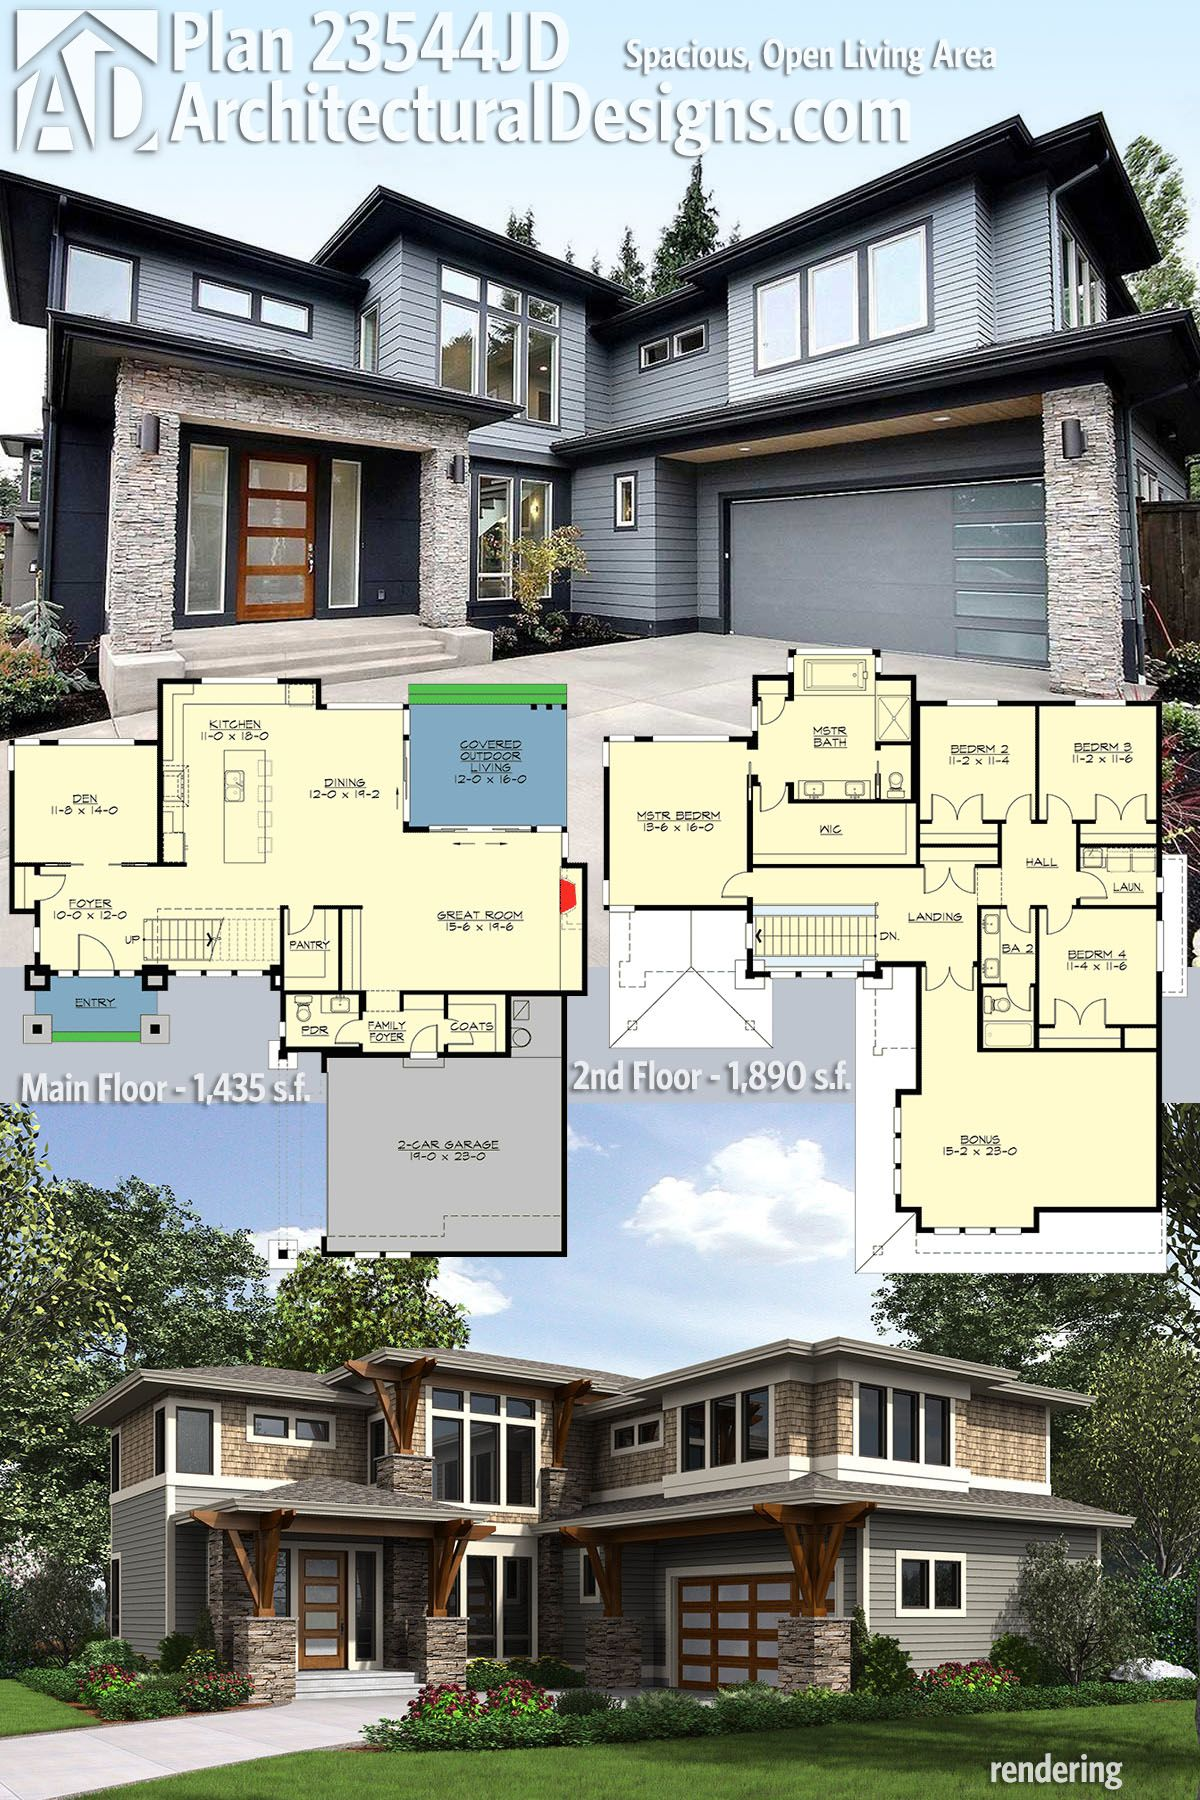 Architectural Designs Modern House Plan 23544JD comes